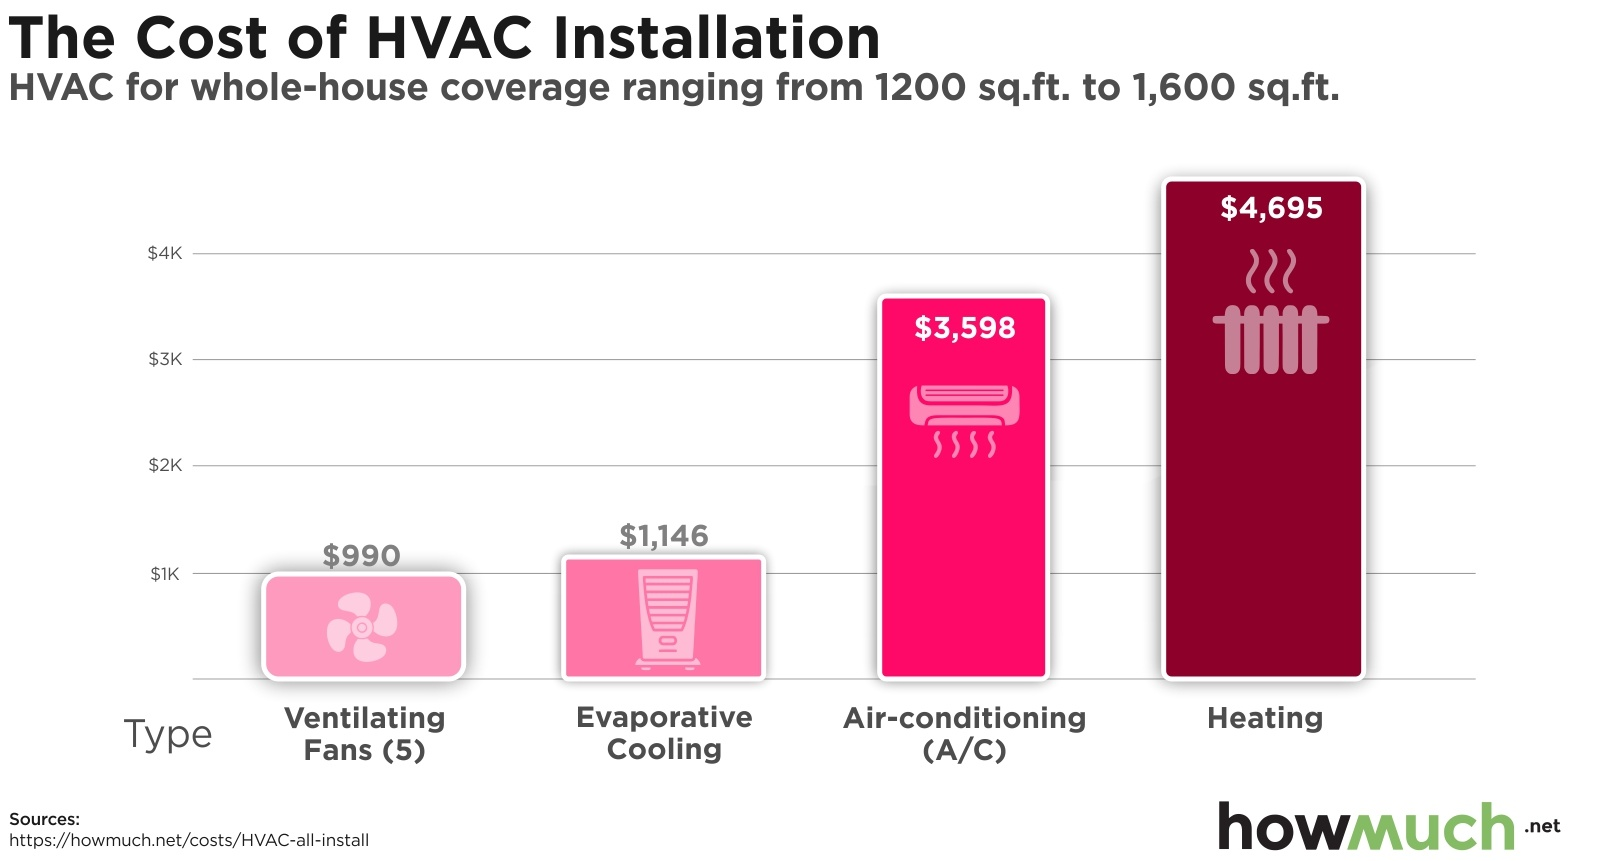 The Cost of HVAC Installation